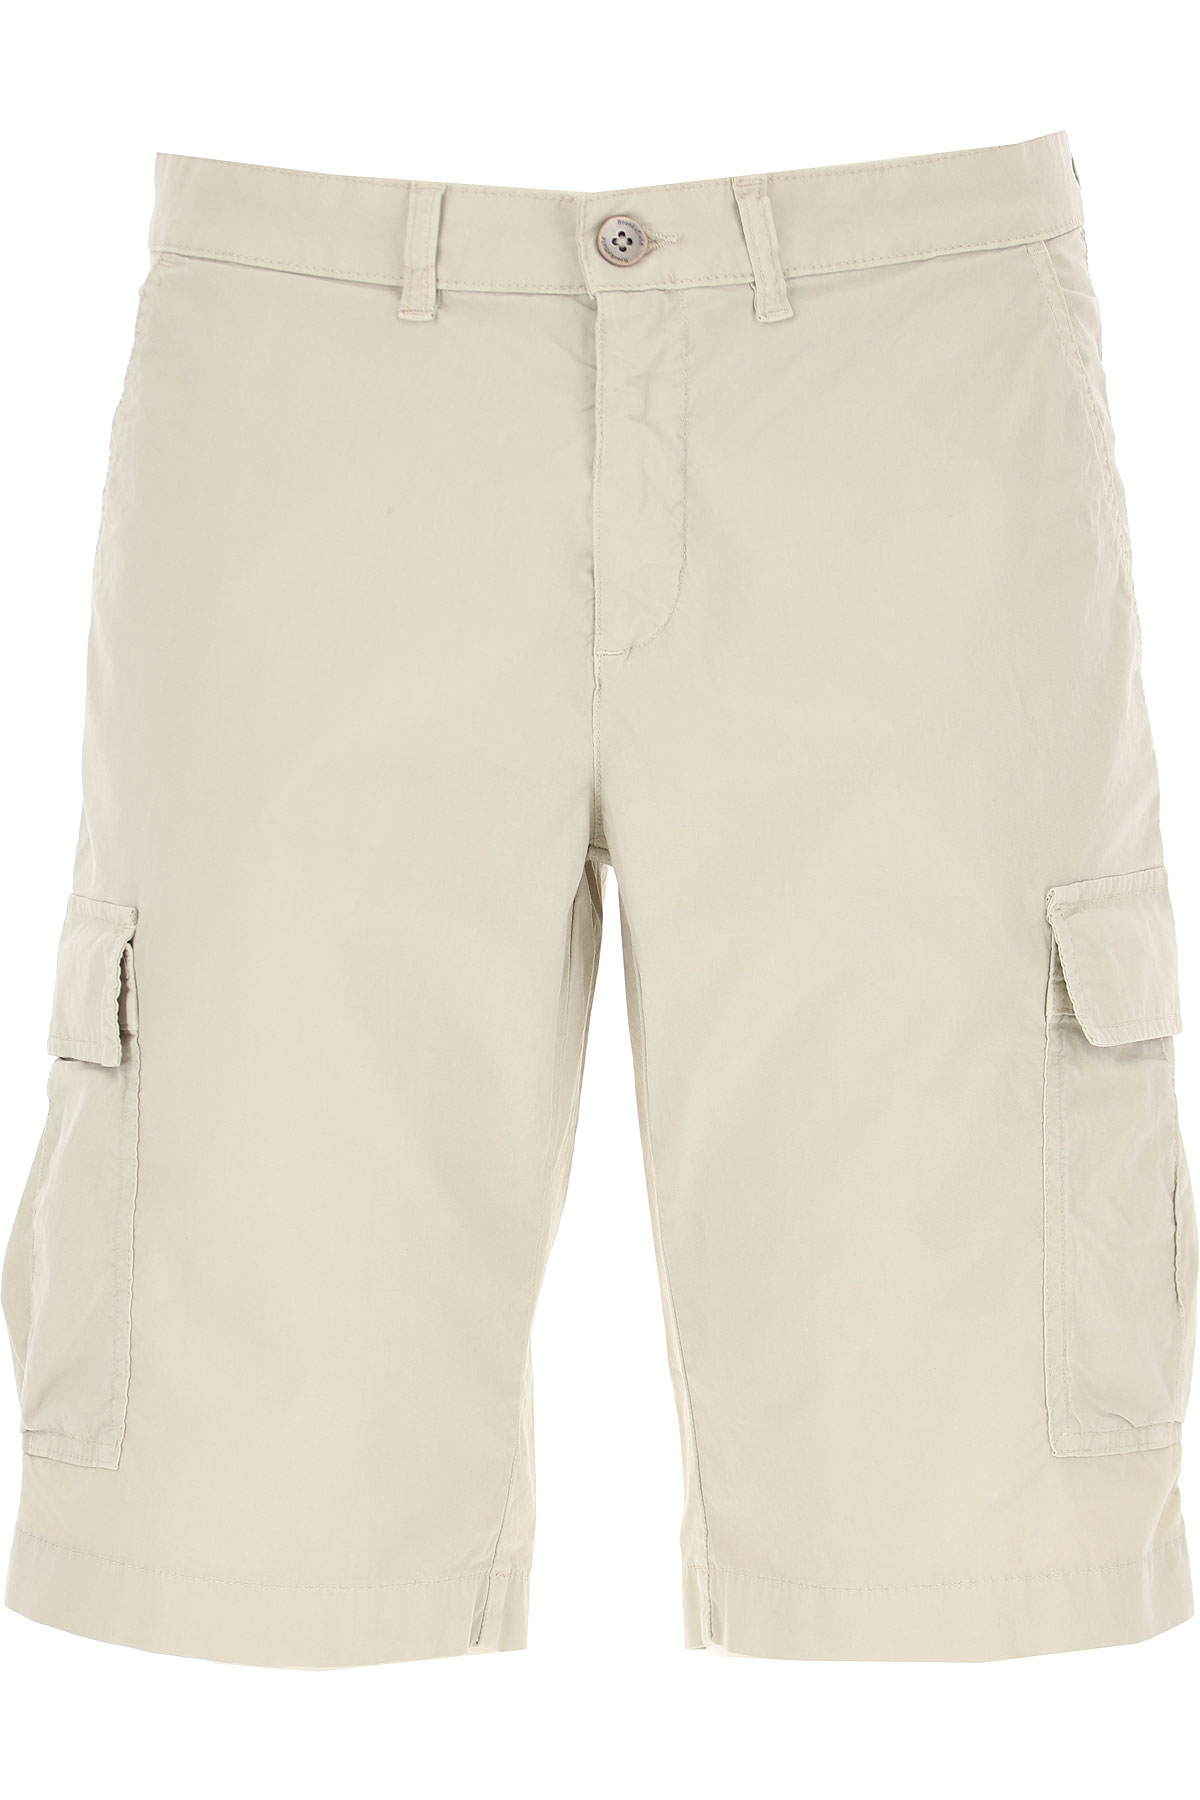 Brooksfield Shorts for Men On Sale, Beige, Cotton, 2019, 32 34 36 38